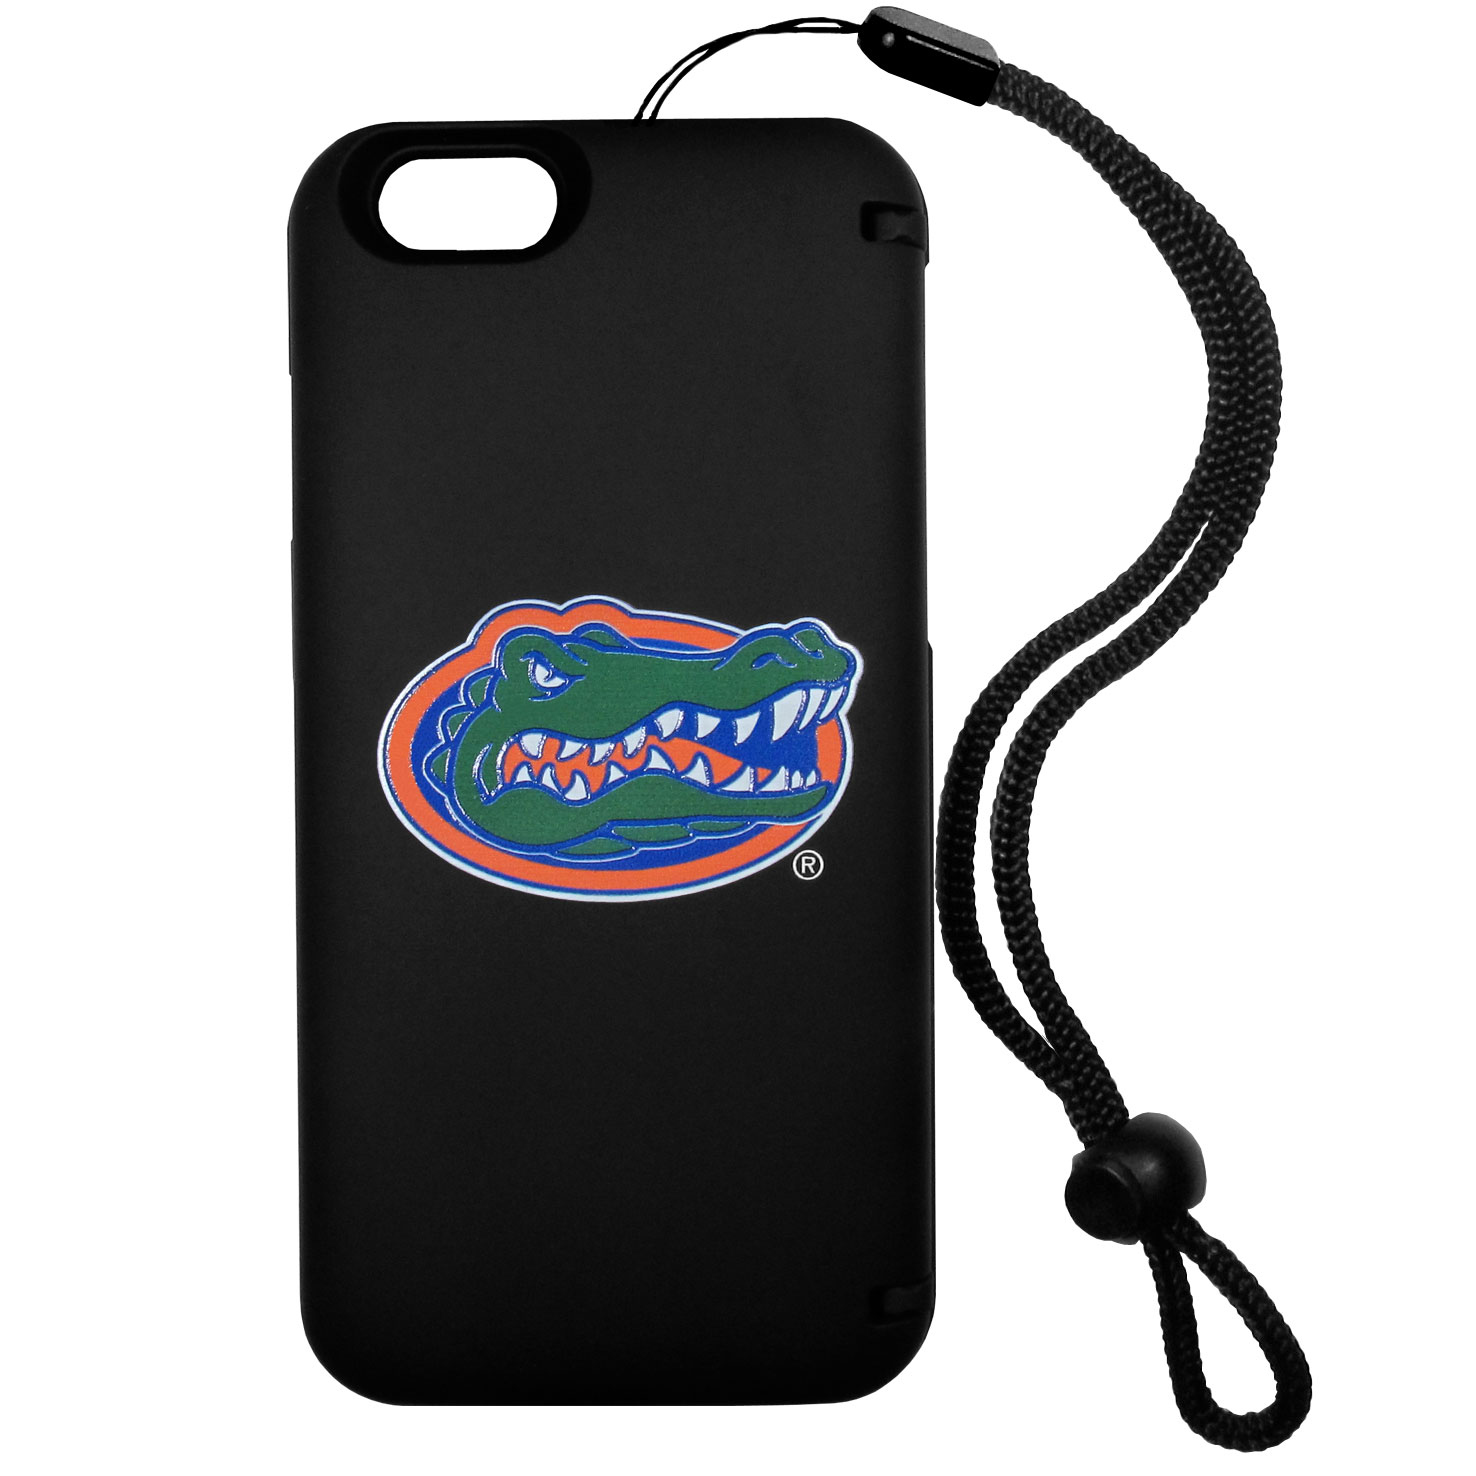 Florida Gators iPhone 6 Everything Case - This case really does have everything but the kitchen sink! The hidden compartment lets you keep your cards, money and tickets to the big game safe and secure and has a compact mirror so you can make sure your game face is ready to go. It also comes with a kickstand to make chatting and watching videos a breeze. The wrist strap allows you to travel with ease with your everything case. If that's not enough, it also comes with the Florida Gators logo printed in expert detail on the front.